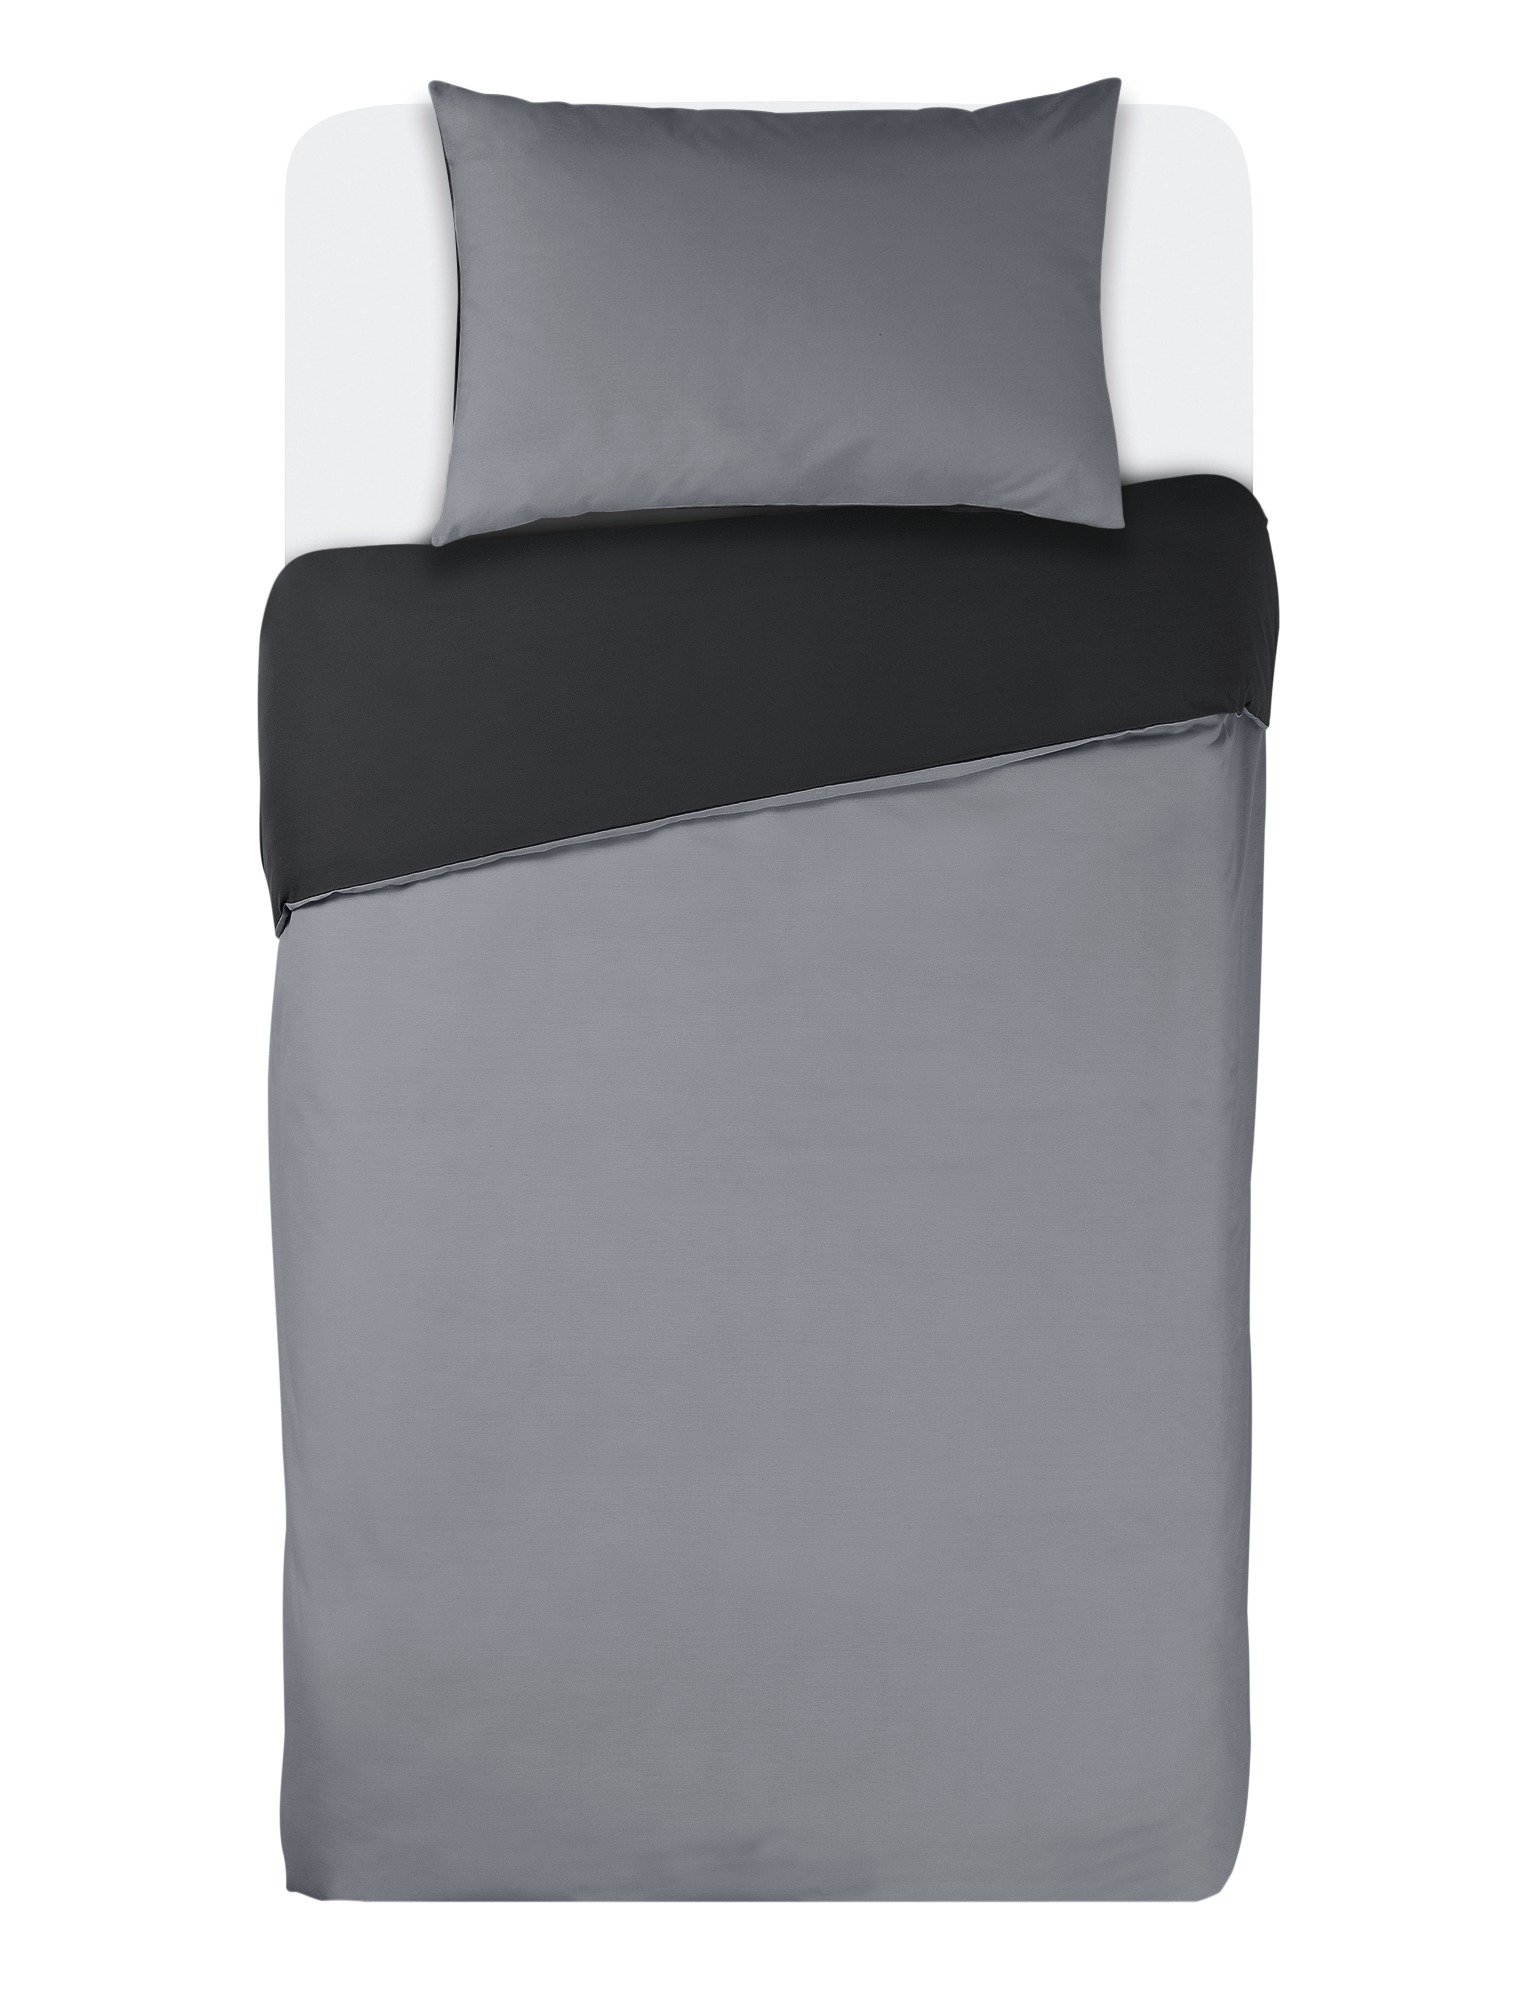 colourmatch jet black/flint grey bedding set  single